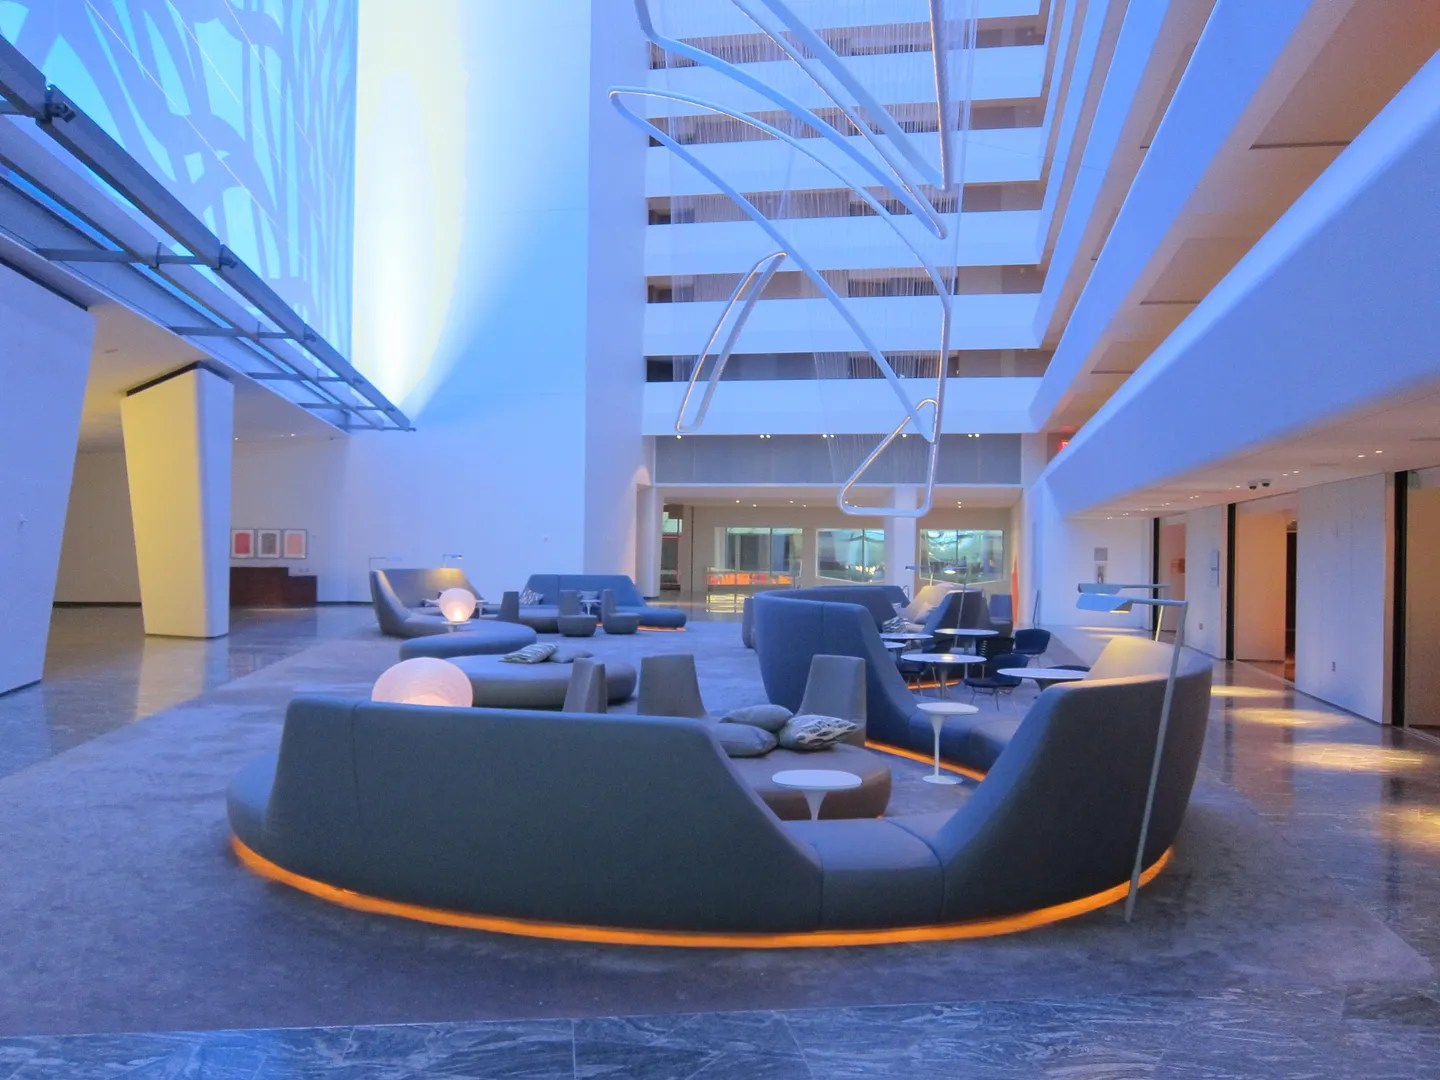 Unpublished Offer: 2500 Hilton Points With Your Next Stay Just for